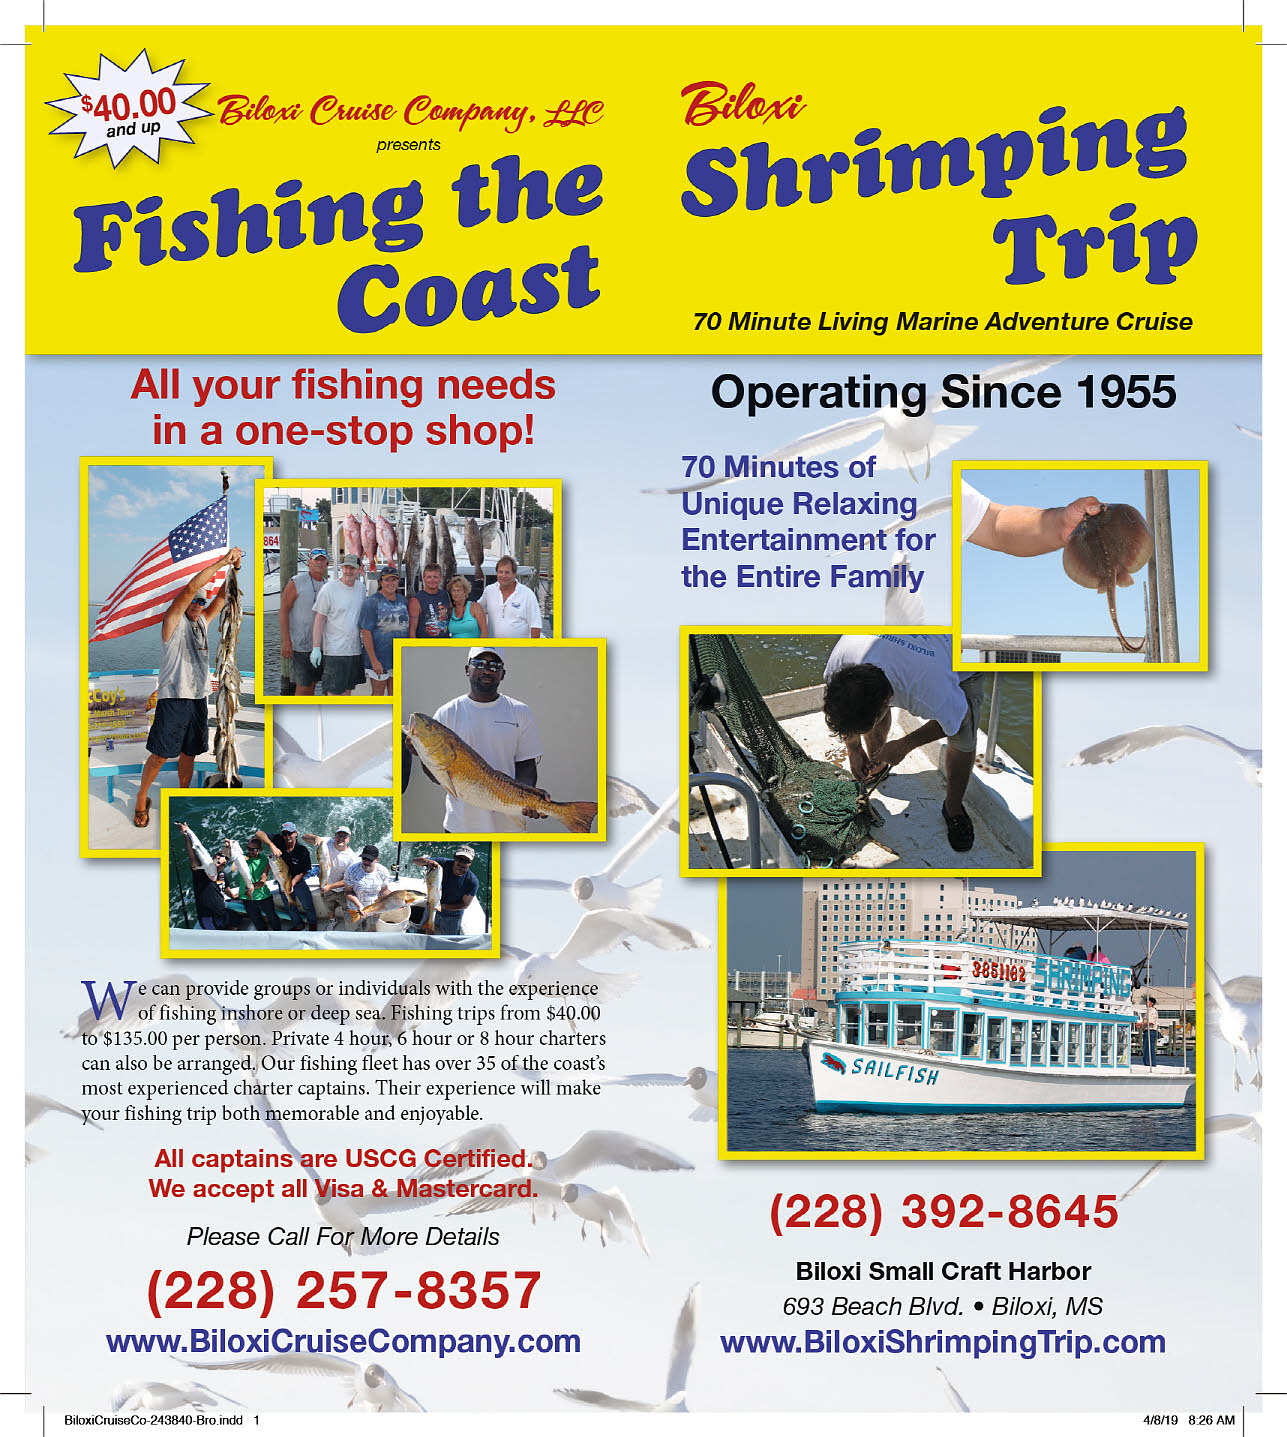 Bilox Cruise Company presents Fishing the Coast Shrimping Trip! 70 minute living marine adventure cruise! Operating since 1955! 70 minutes of unique relaxing entertainment for the entire family. (228) 392-8645 All your fishing needs in a one-stop shop! We can provide groups or individuals with experience of fishing inshore or deep sea.  fishing trips from $40.00 to $135.00 per person.  Private 4 hour, 6 hour, or 8 hour charters can also be arranged.  Our fishing fleet has over 35 of the coast's most experienced Charter captains.  Their experience will make your fishing trip both memorable and enjoyable.  All Captains are USCG Certified.  We accept all Visa & Mastercard.  Please call for more details. (228)-257-8357.  www.BiloxiCruiseCompany.com.